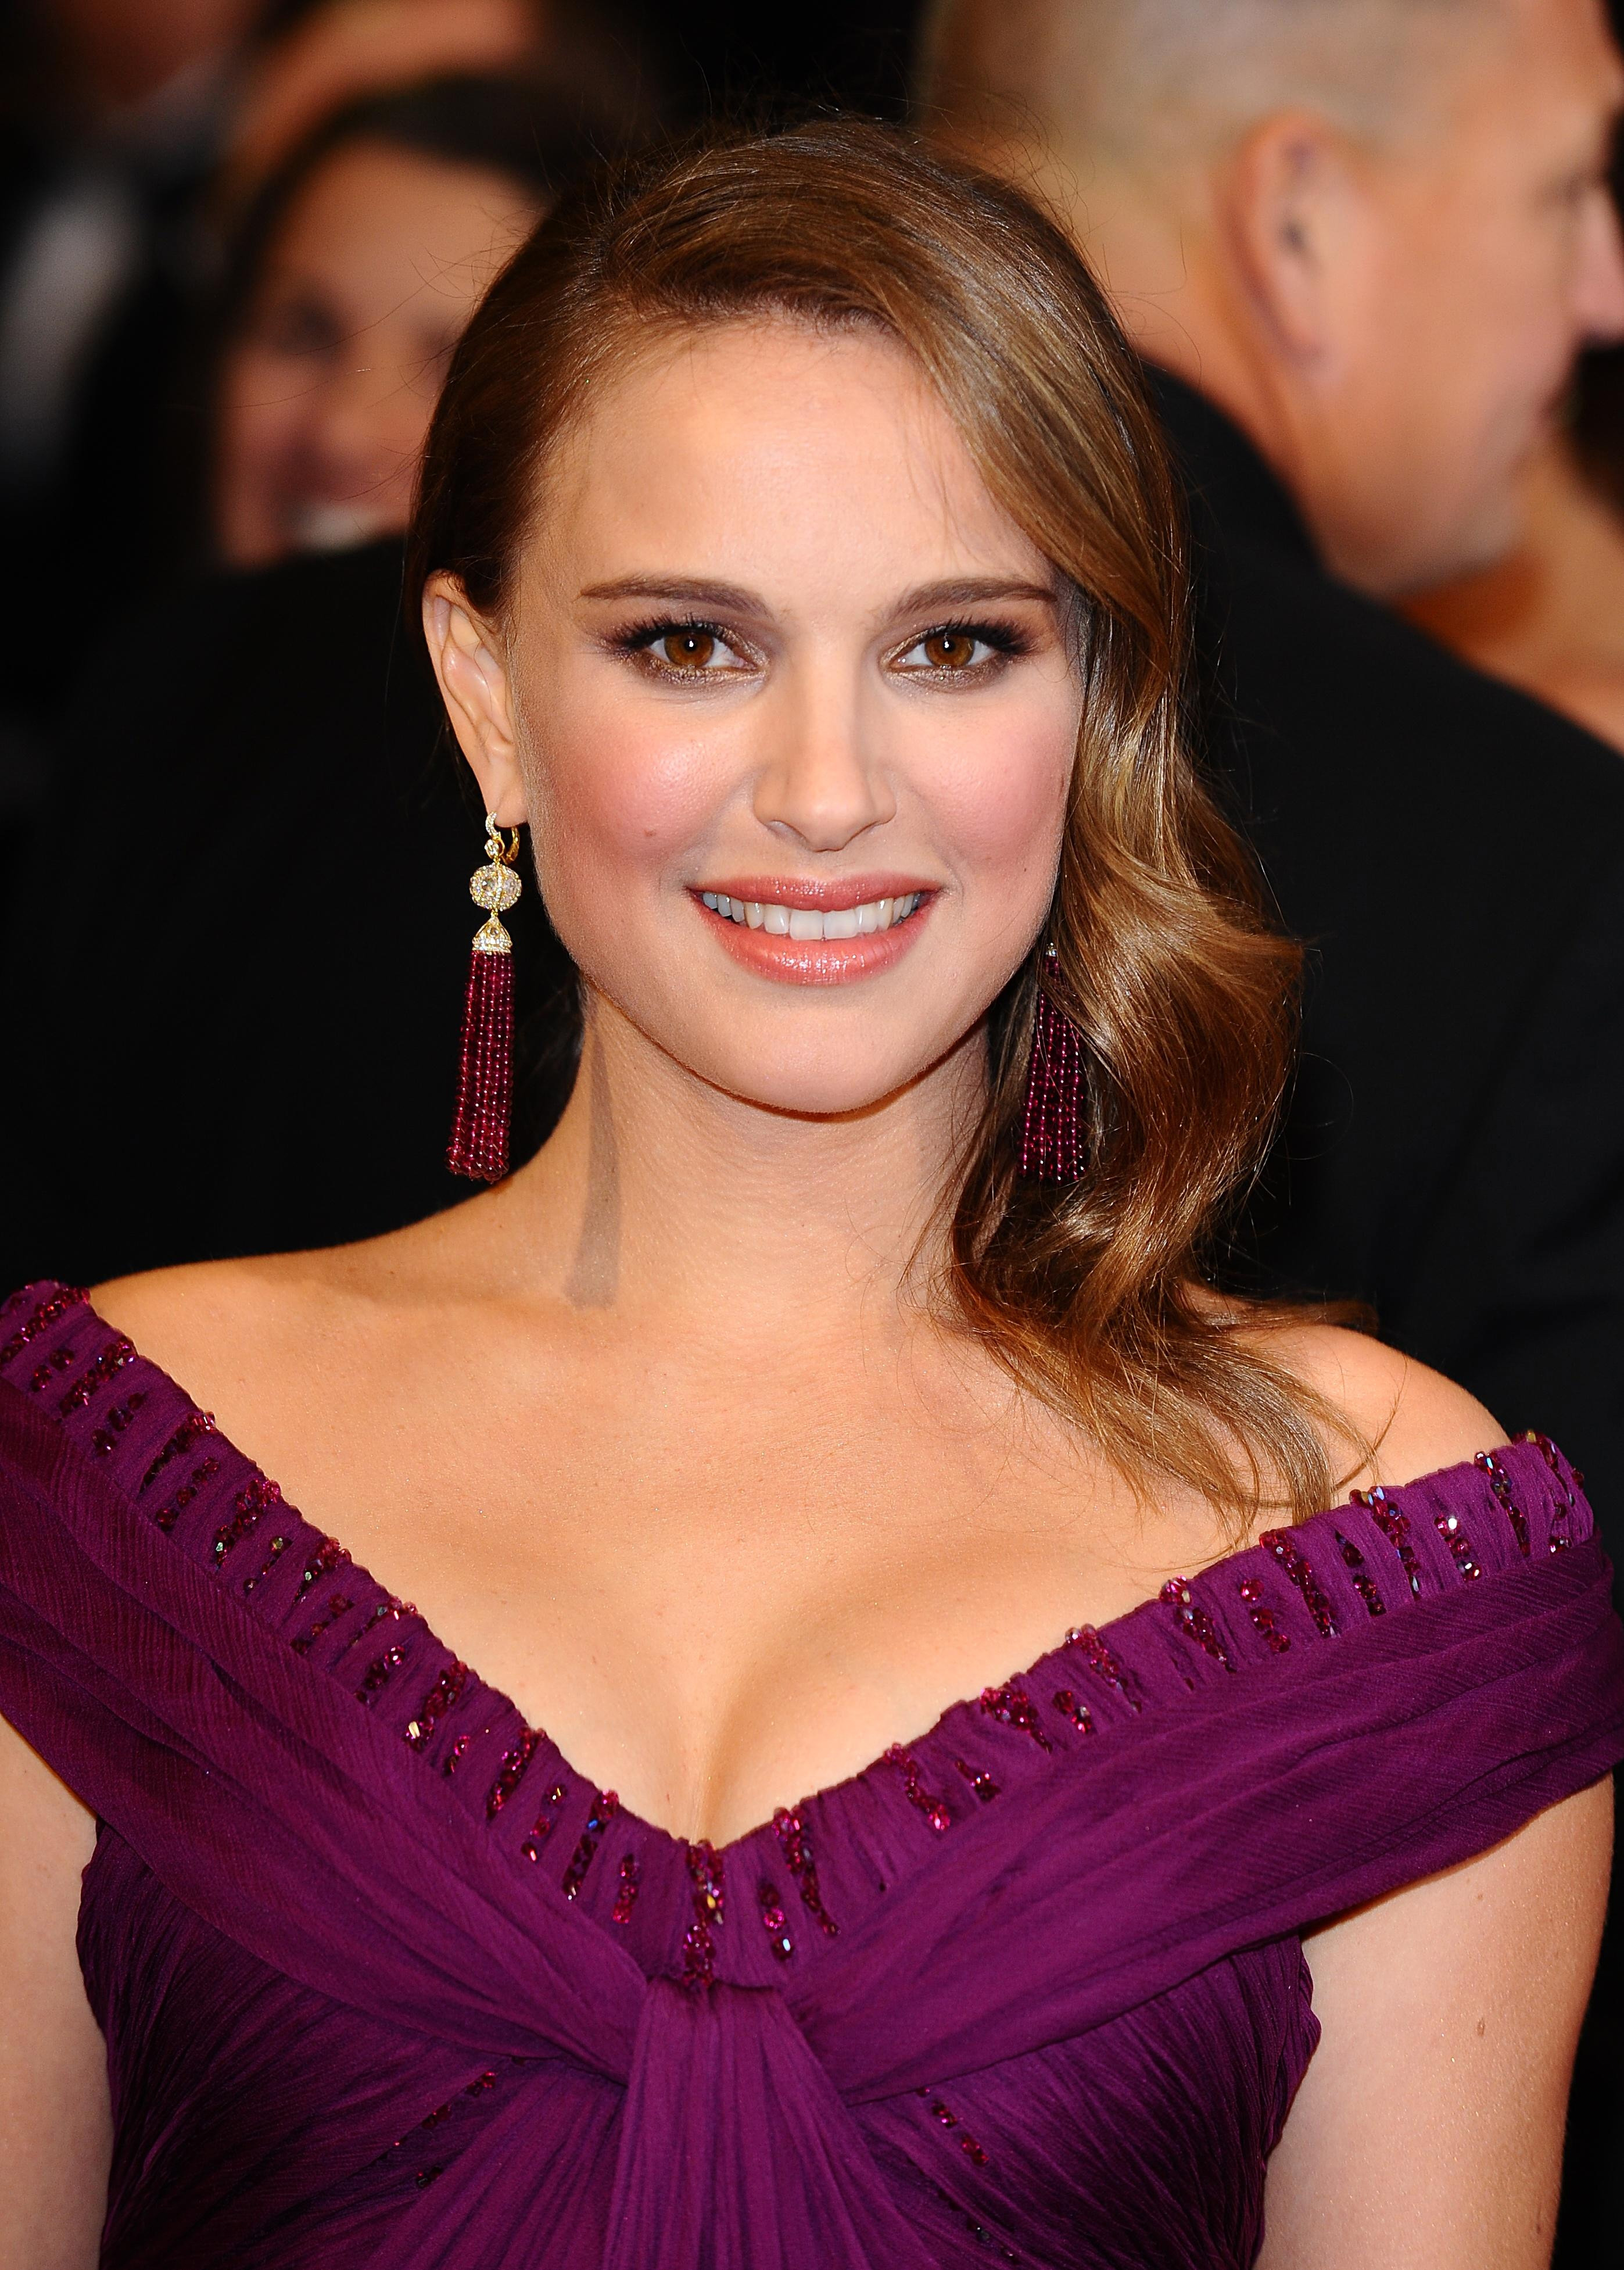 Oscars 2011: Natalie Portman resplendent with its curvaceous pregnant woman and her Oscar!